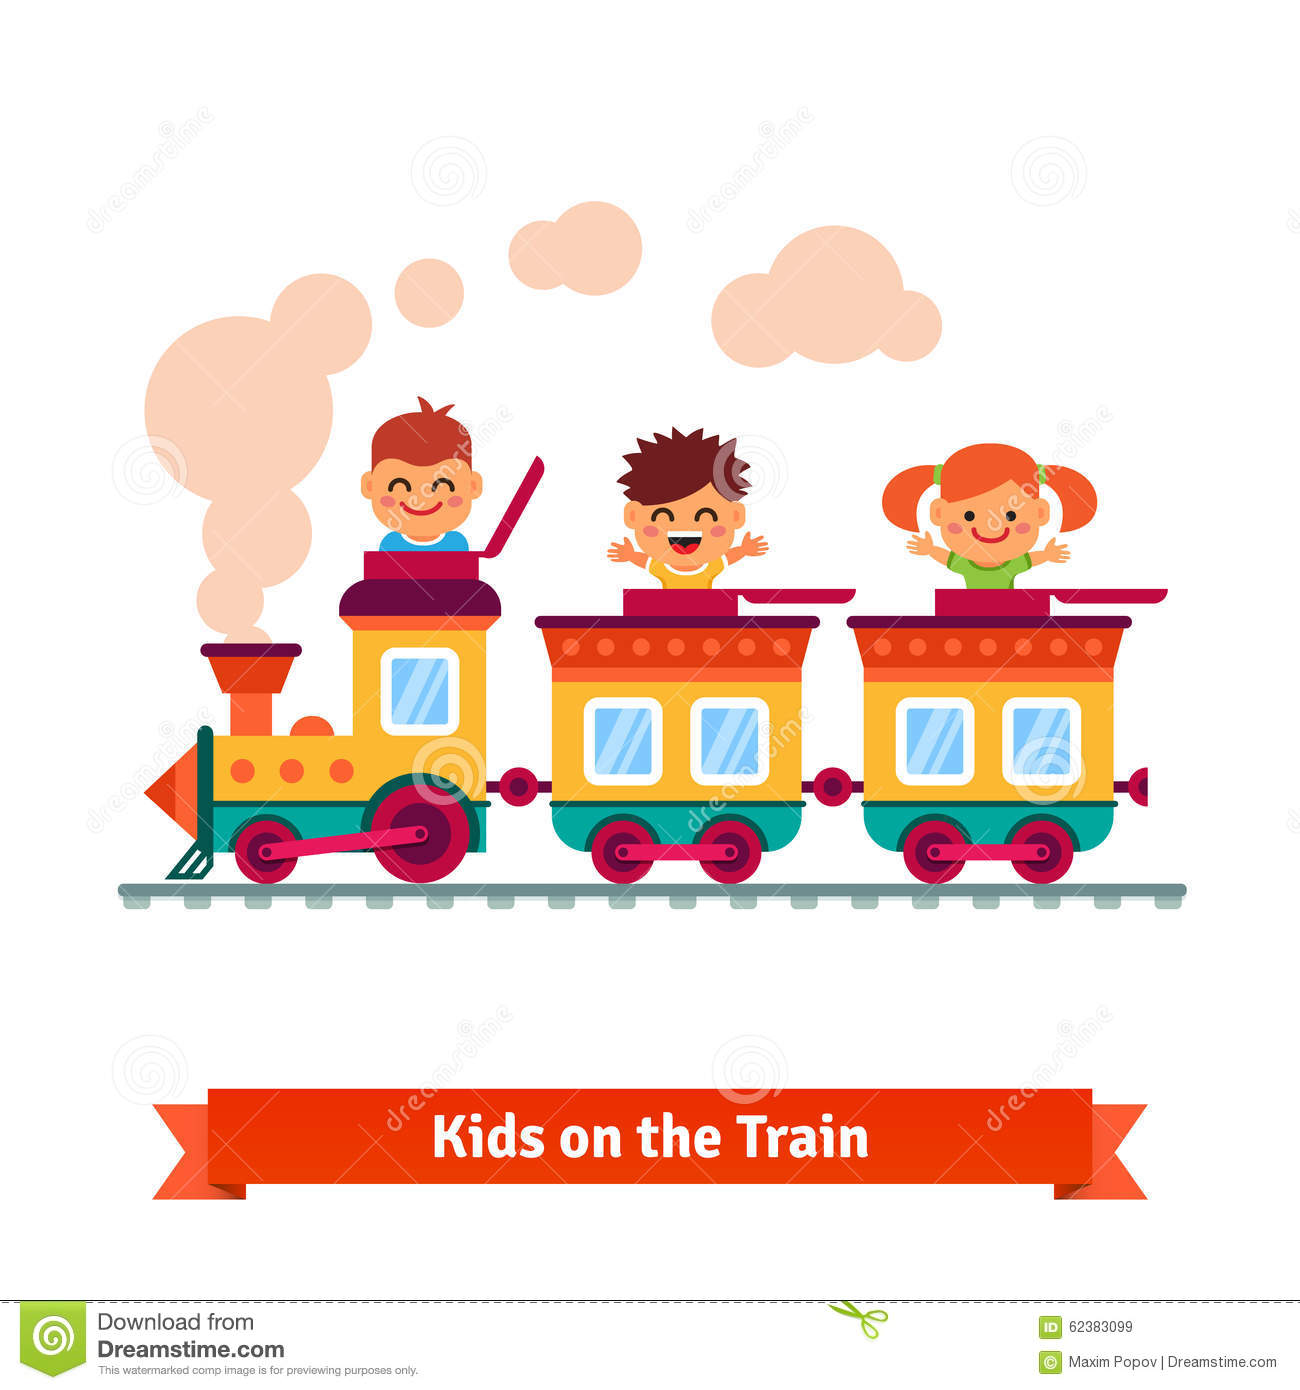 Clipart of boy riding train with animals.